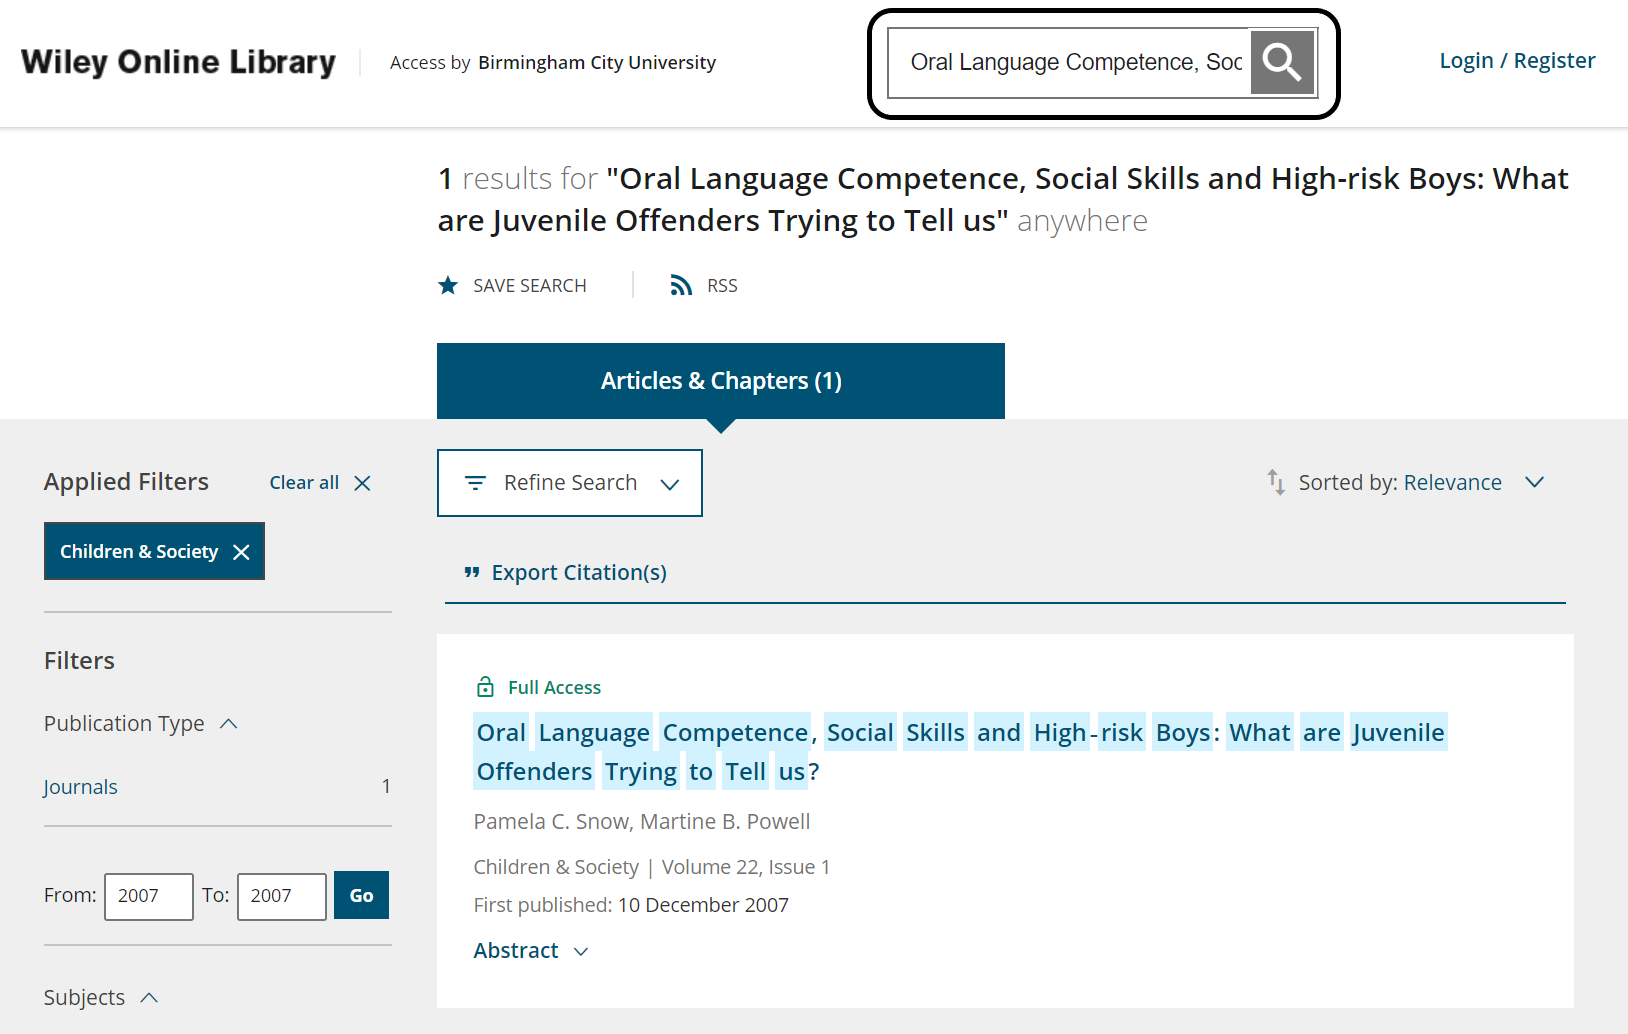 Search for the journal article by title